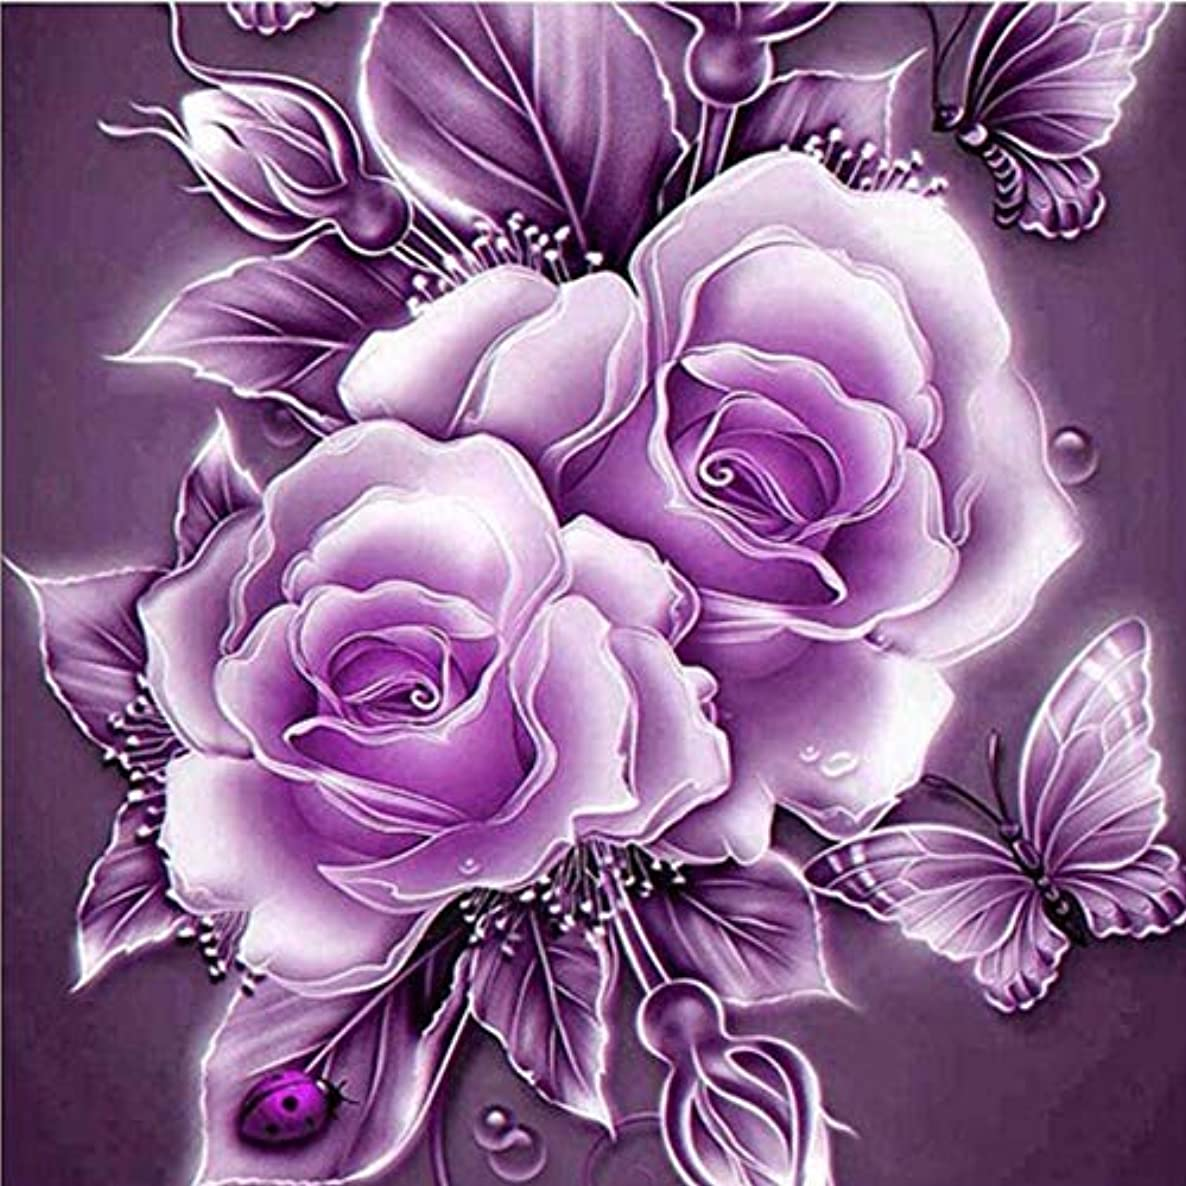 Wowdecor 5D Crystal Diamond Painting with Diamonds Kits, Retro Rose Red Flower & Butterfly, Full Drill DIY Diamond Dotz Embroidery Crafts Graphy Art